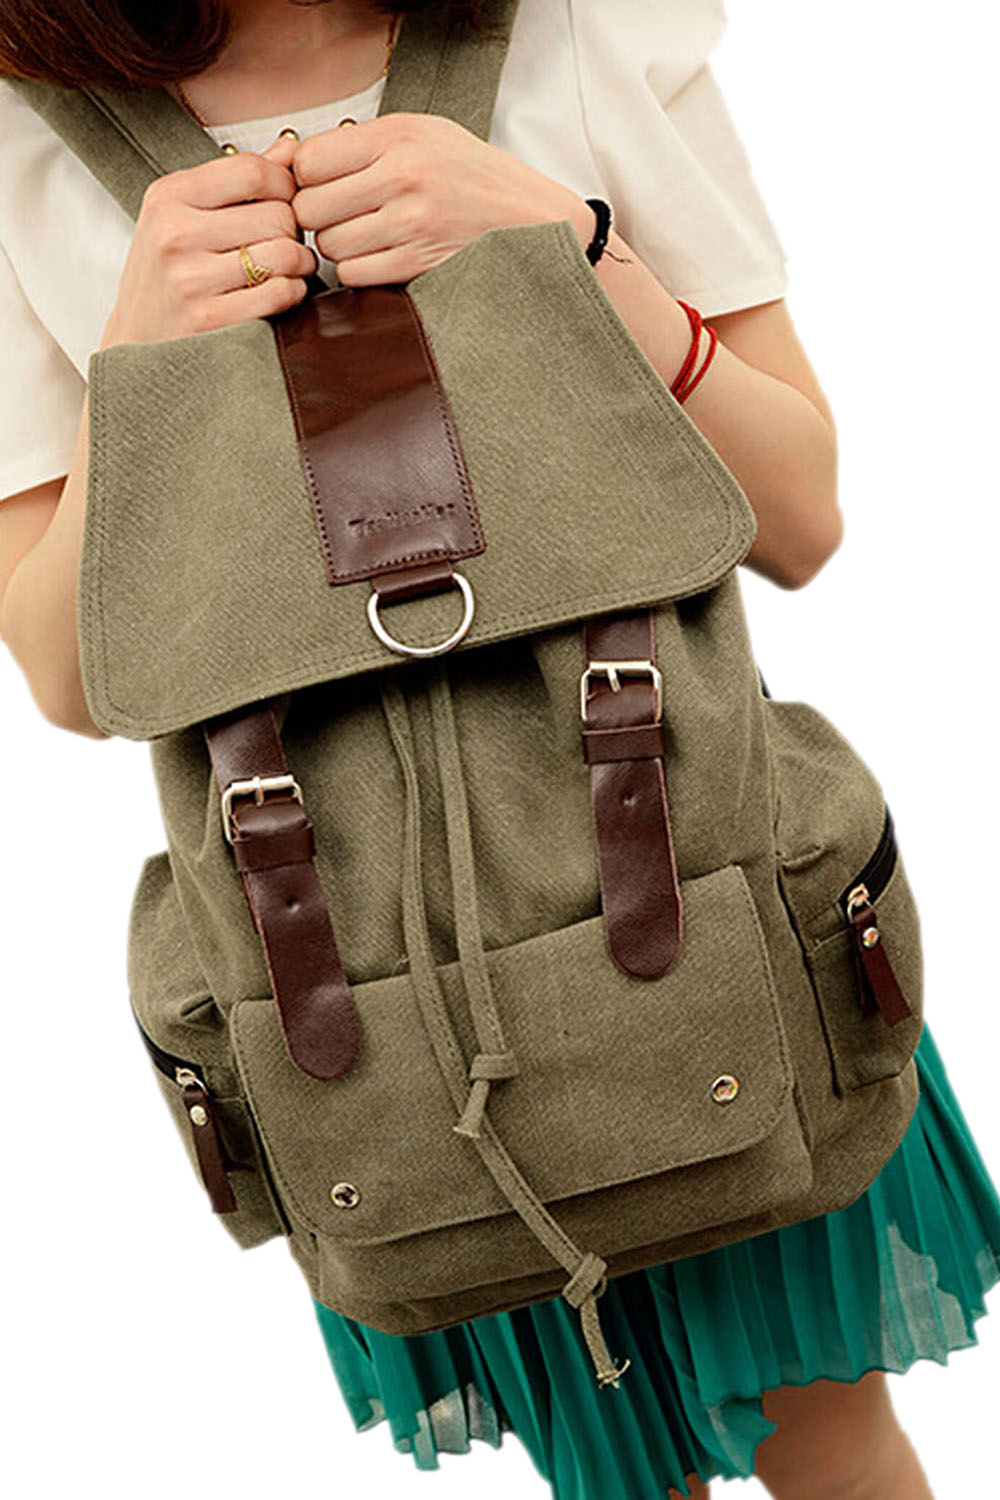 m889 retro leinwand leder wandern spielraum rucksack beutel braun ebay. Black Bedroom Furniture Sets. Home Design Ideas